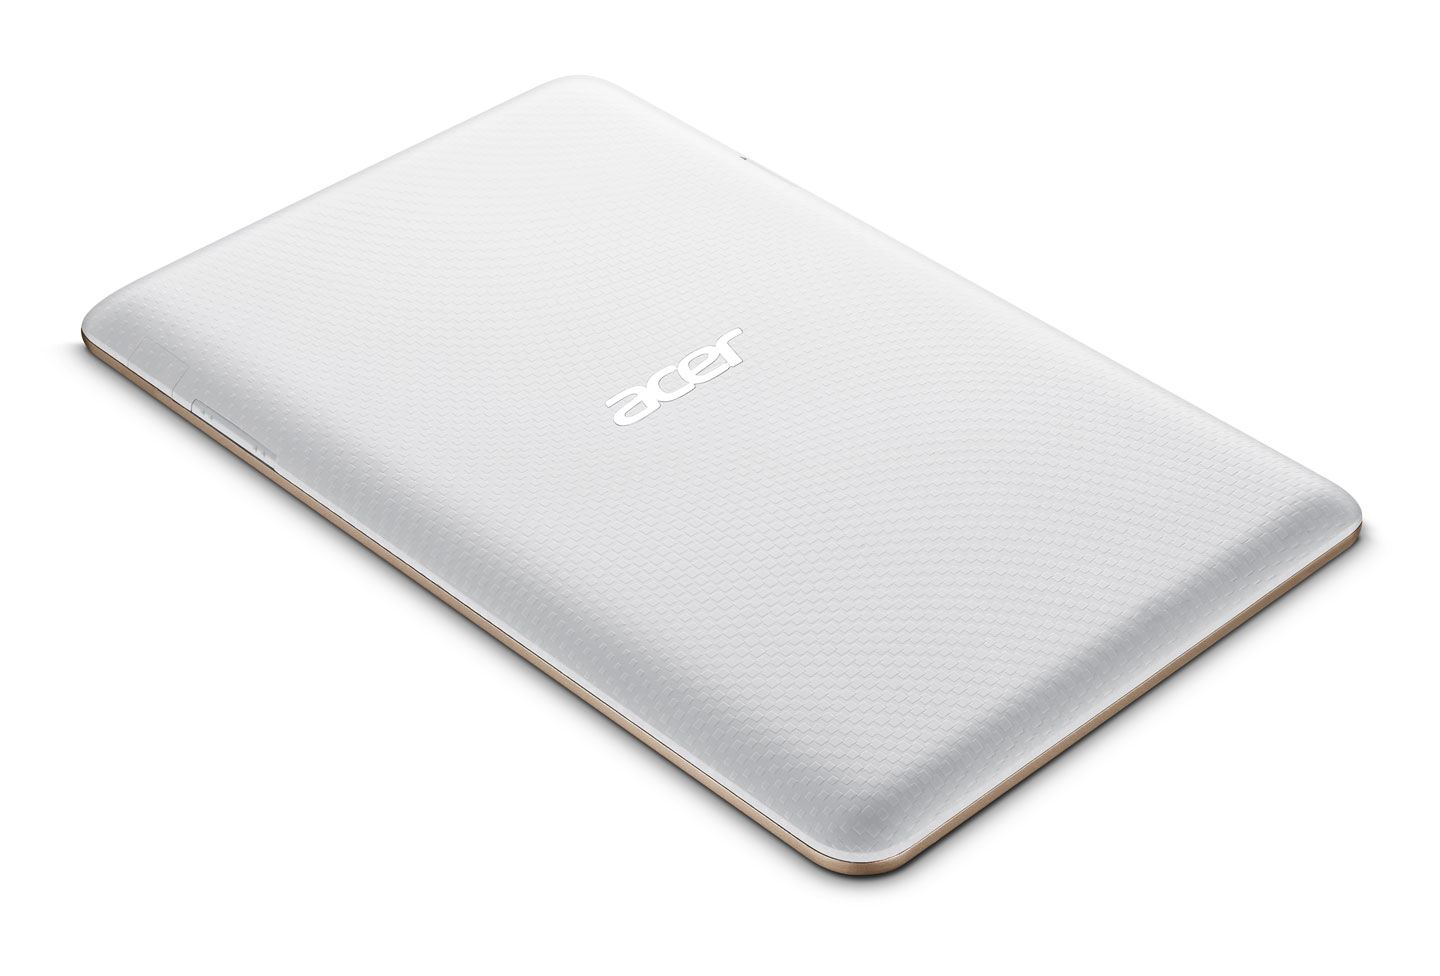 Acer Iconia B1 720 flat ivory gold Acer unveils two new sub $200 Android tablets, a $1099 desktop, and an updated C720 Chromebook